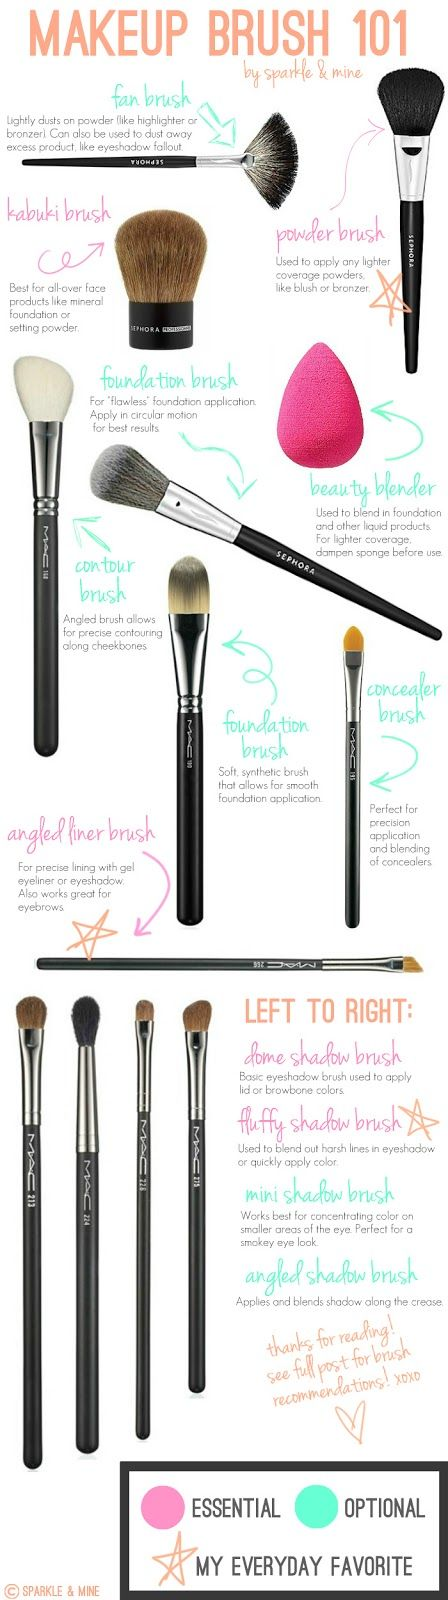 What are all of these brushes for